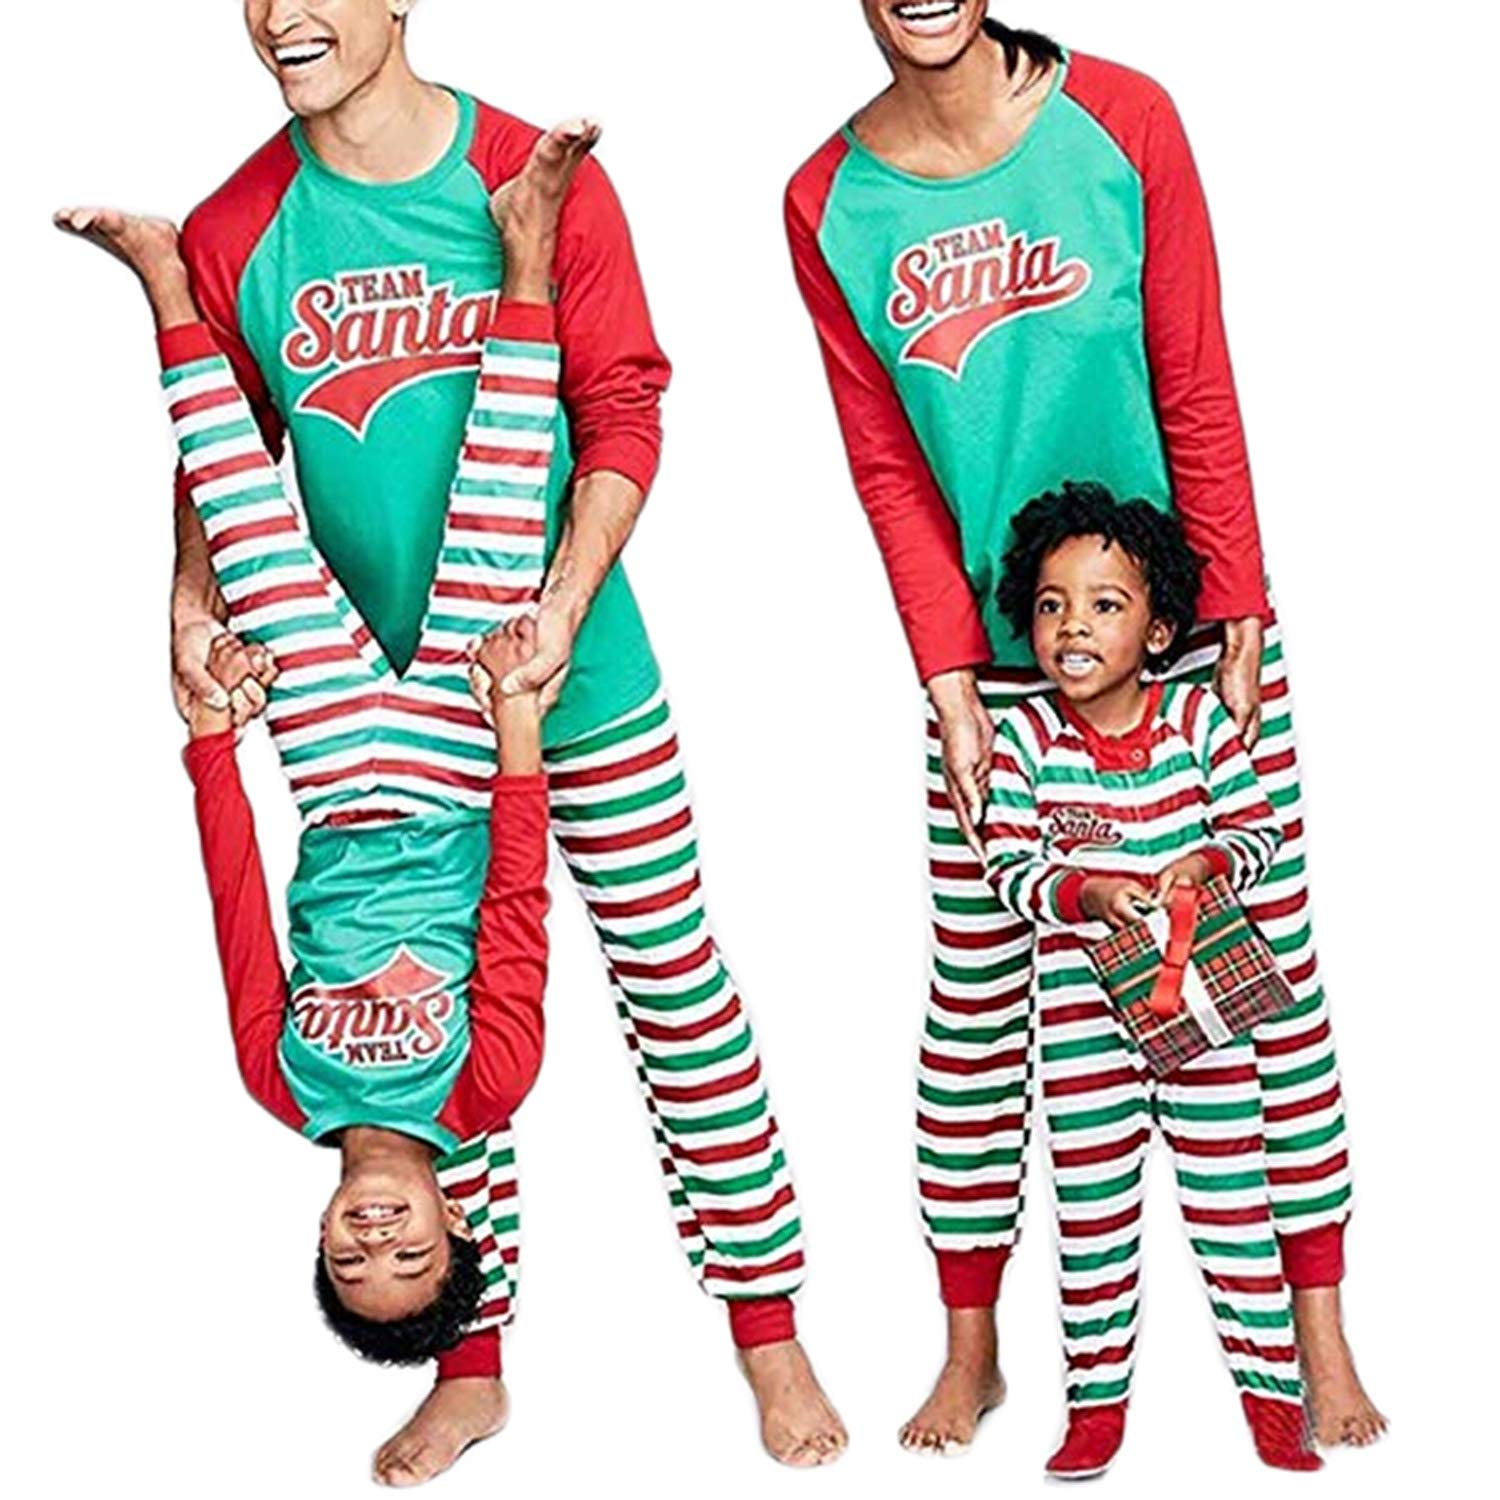 WIFORNT Family Christmas Pajamas Set Santa Letter Print Tops Striped Pants Outfits